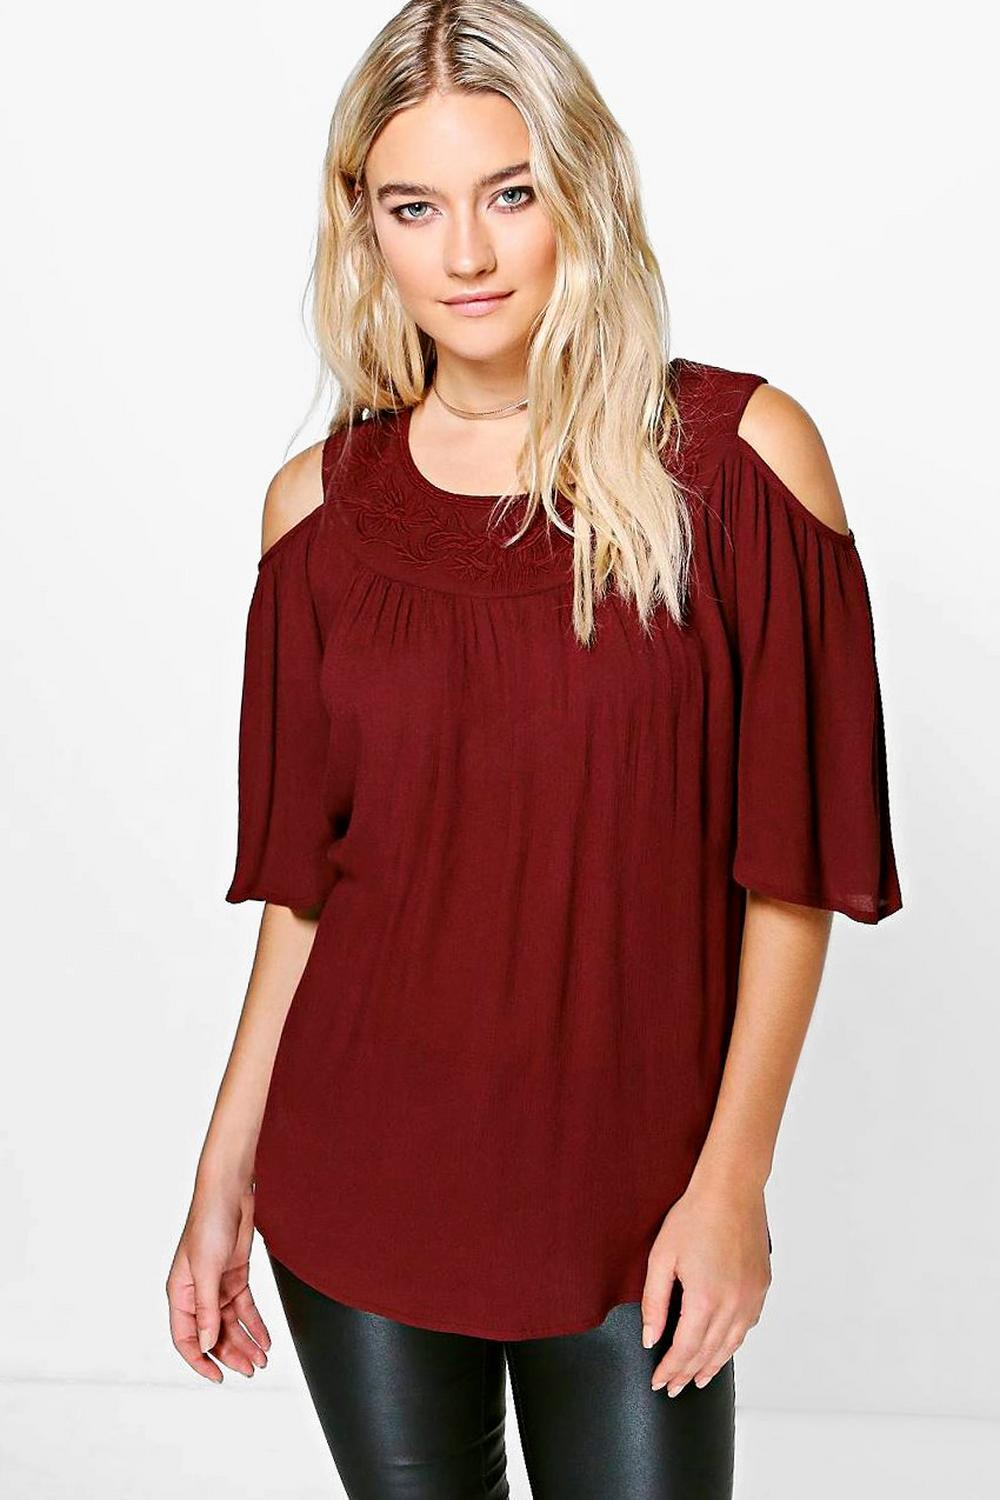 Lara Embroidered Neck Trim Cold Shoulder Top